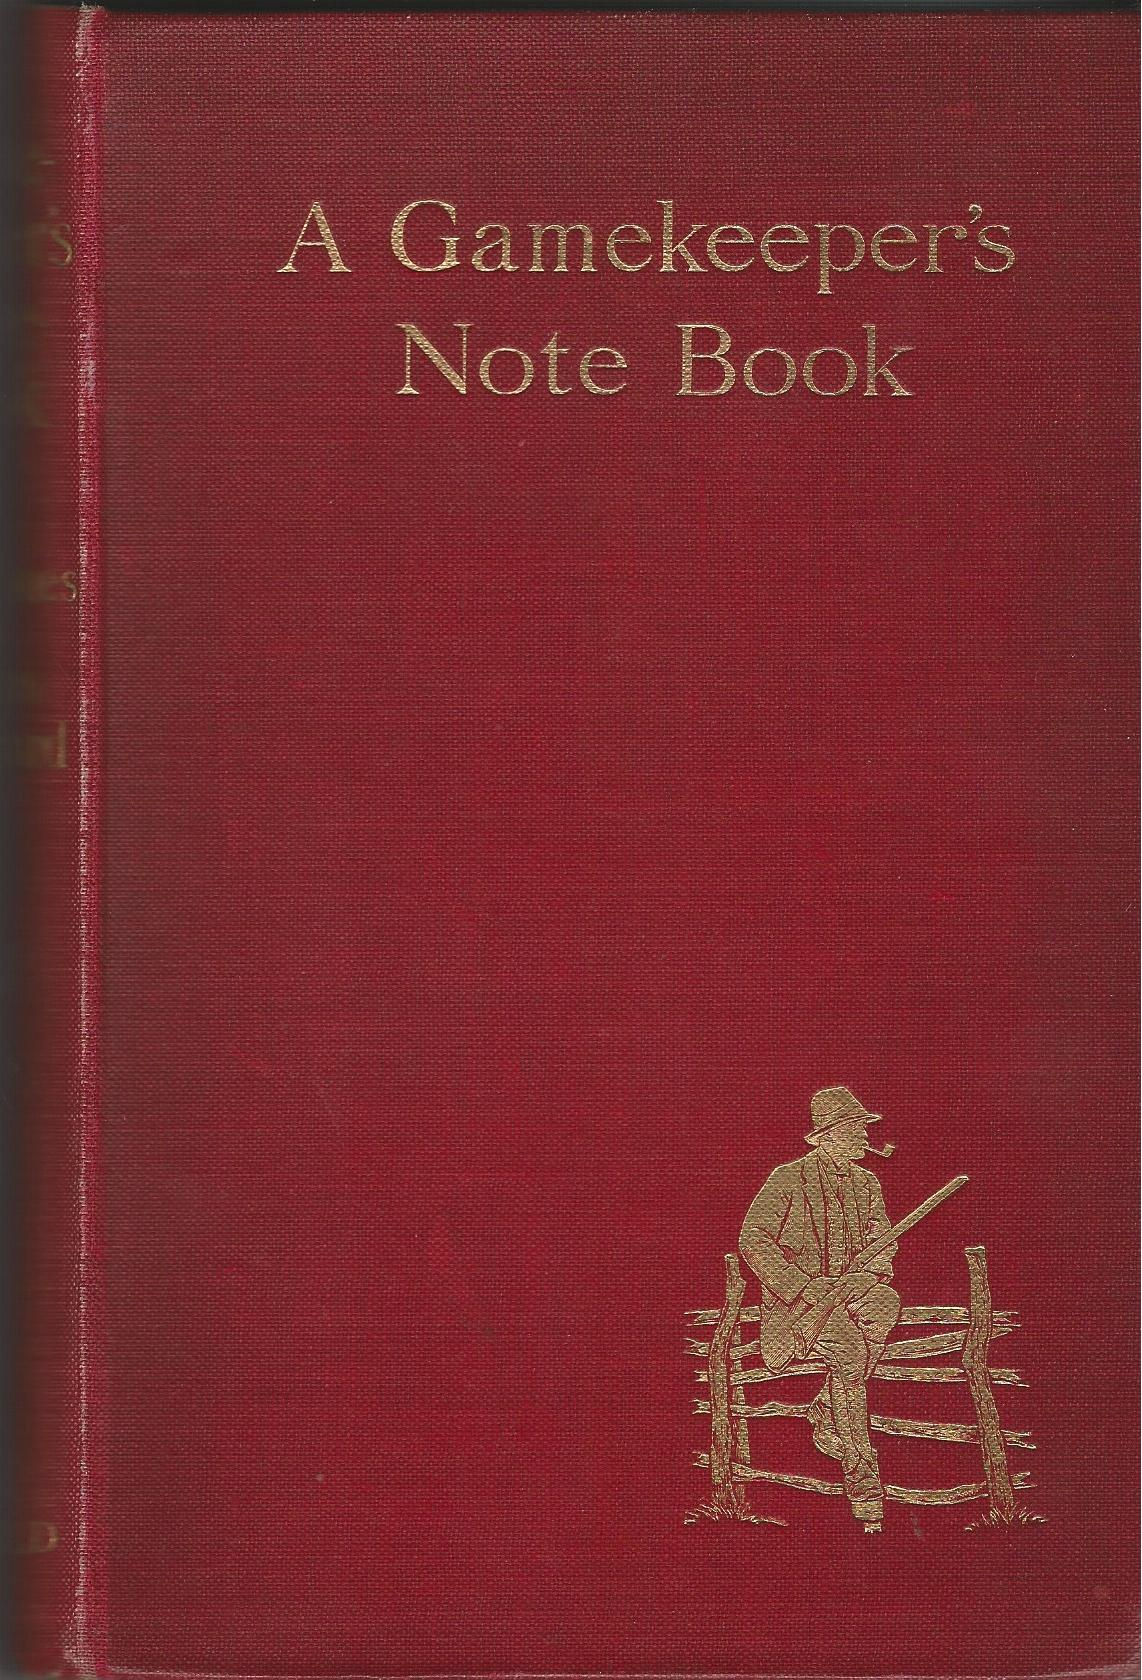 Image for A Gamekeeper's Note Book